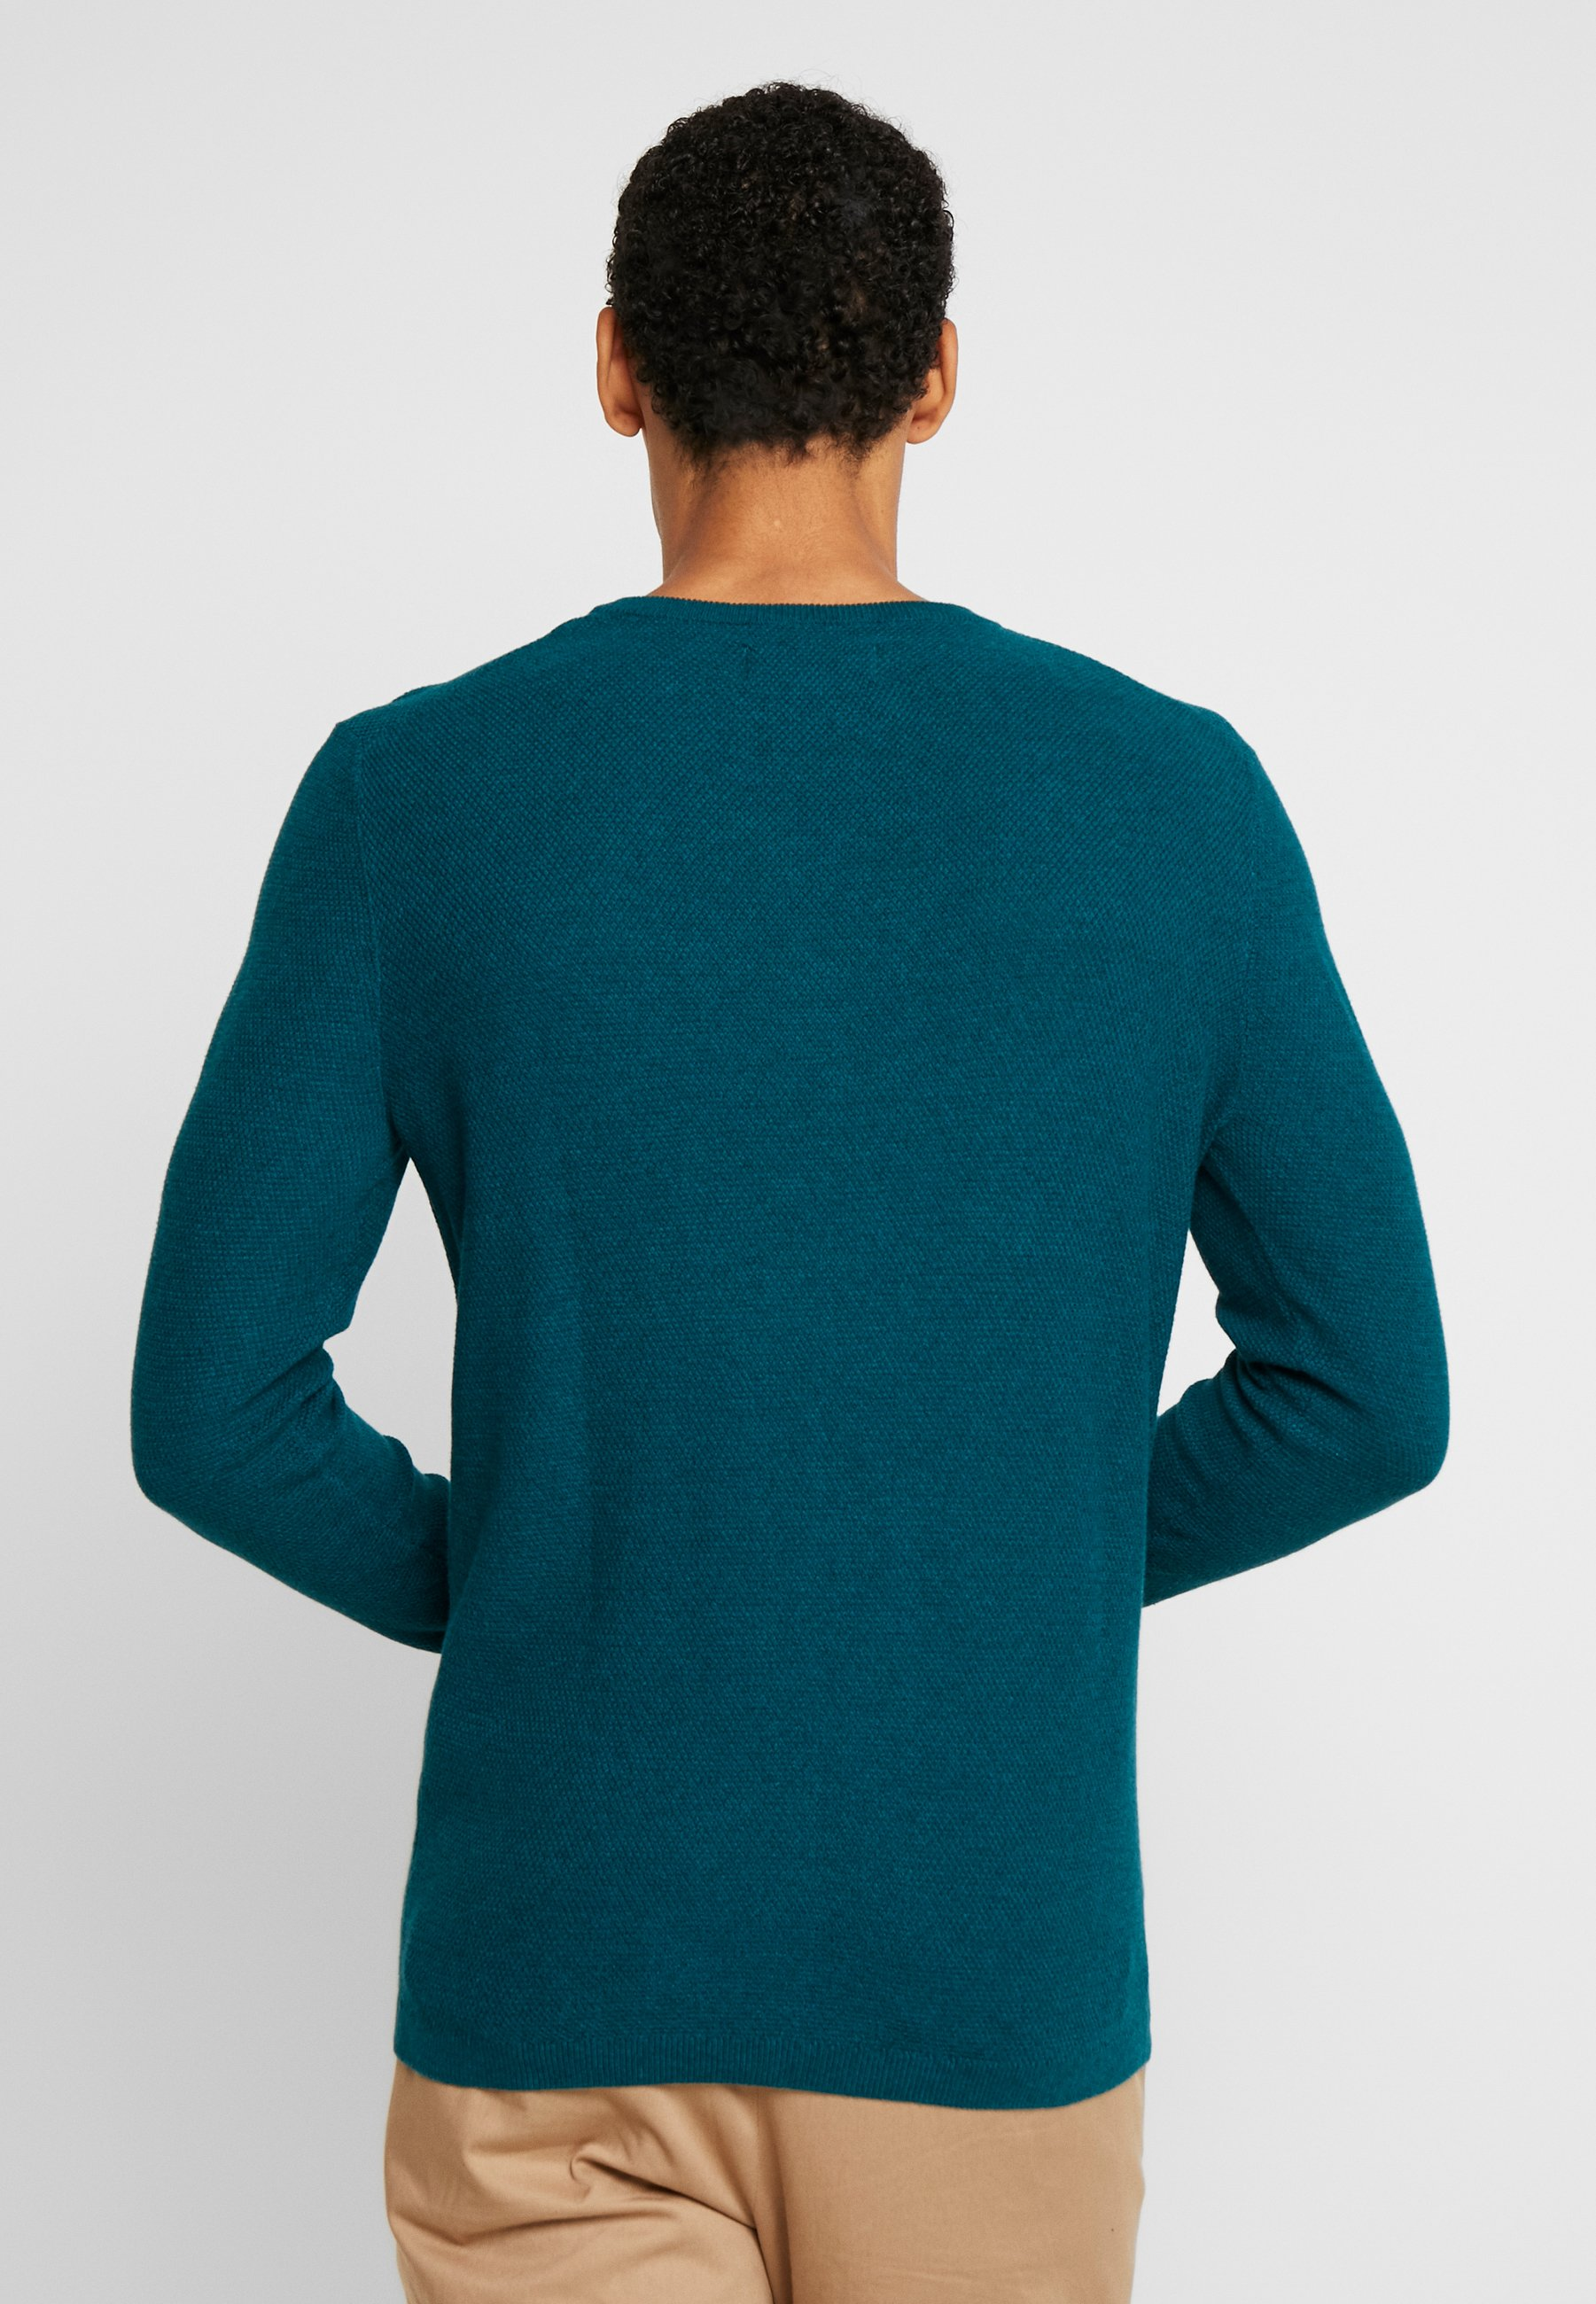 Tailor Tom Atlantic Structured NeckPullover Depth Crew green Denim Melange dBtshQrCx